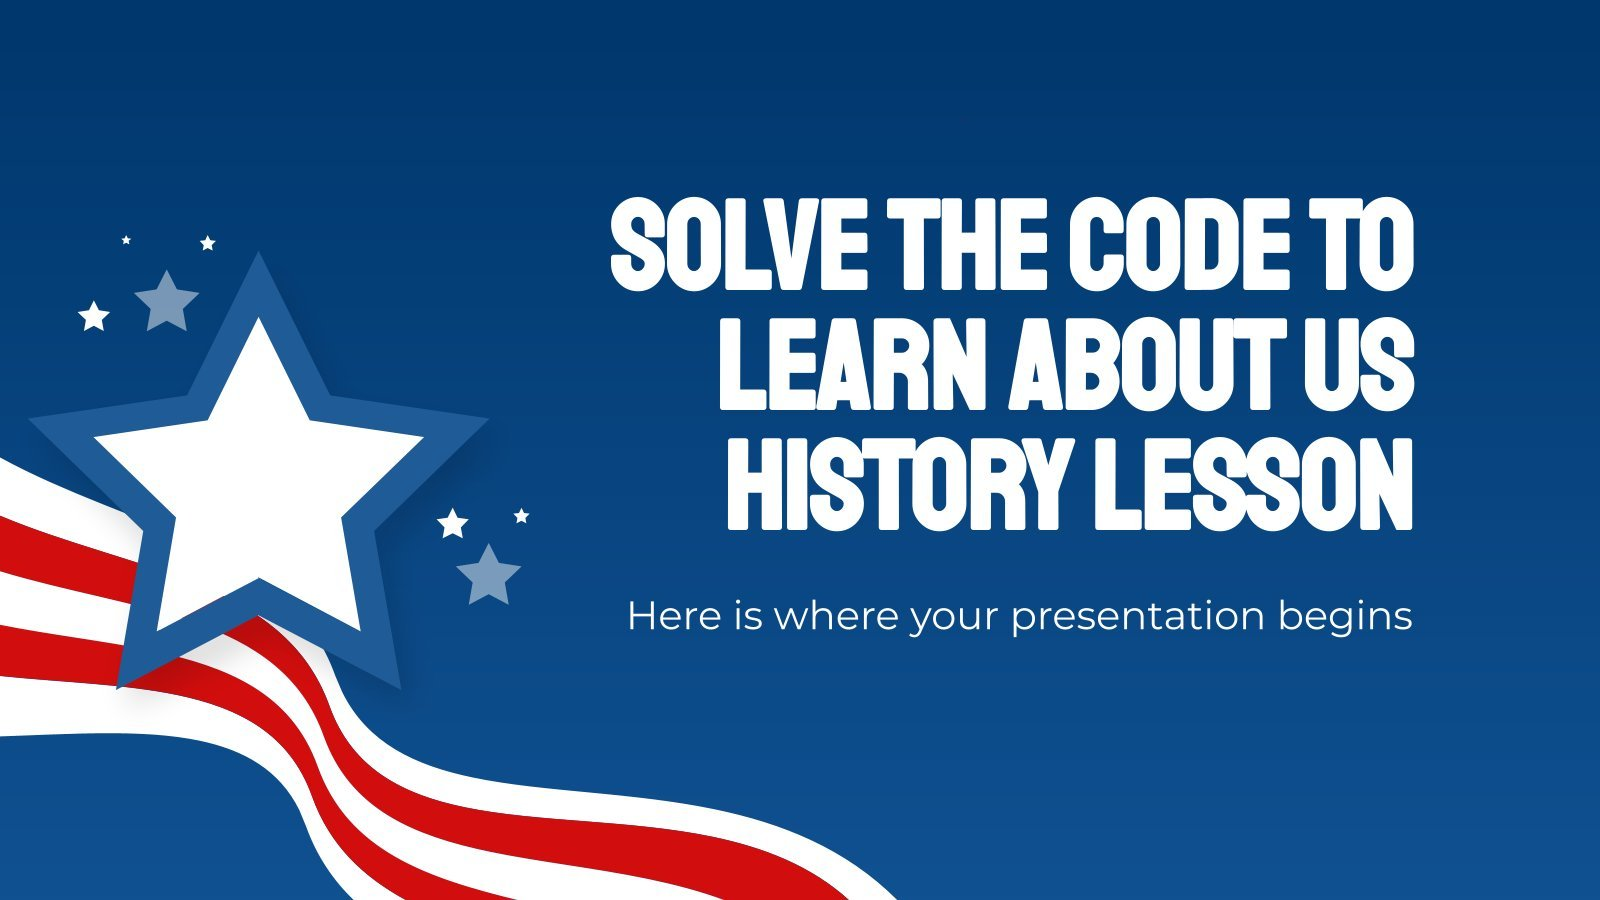 Solve the Code to learn about US History Lesson presentation template